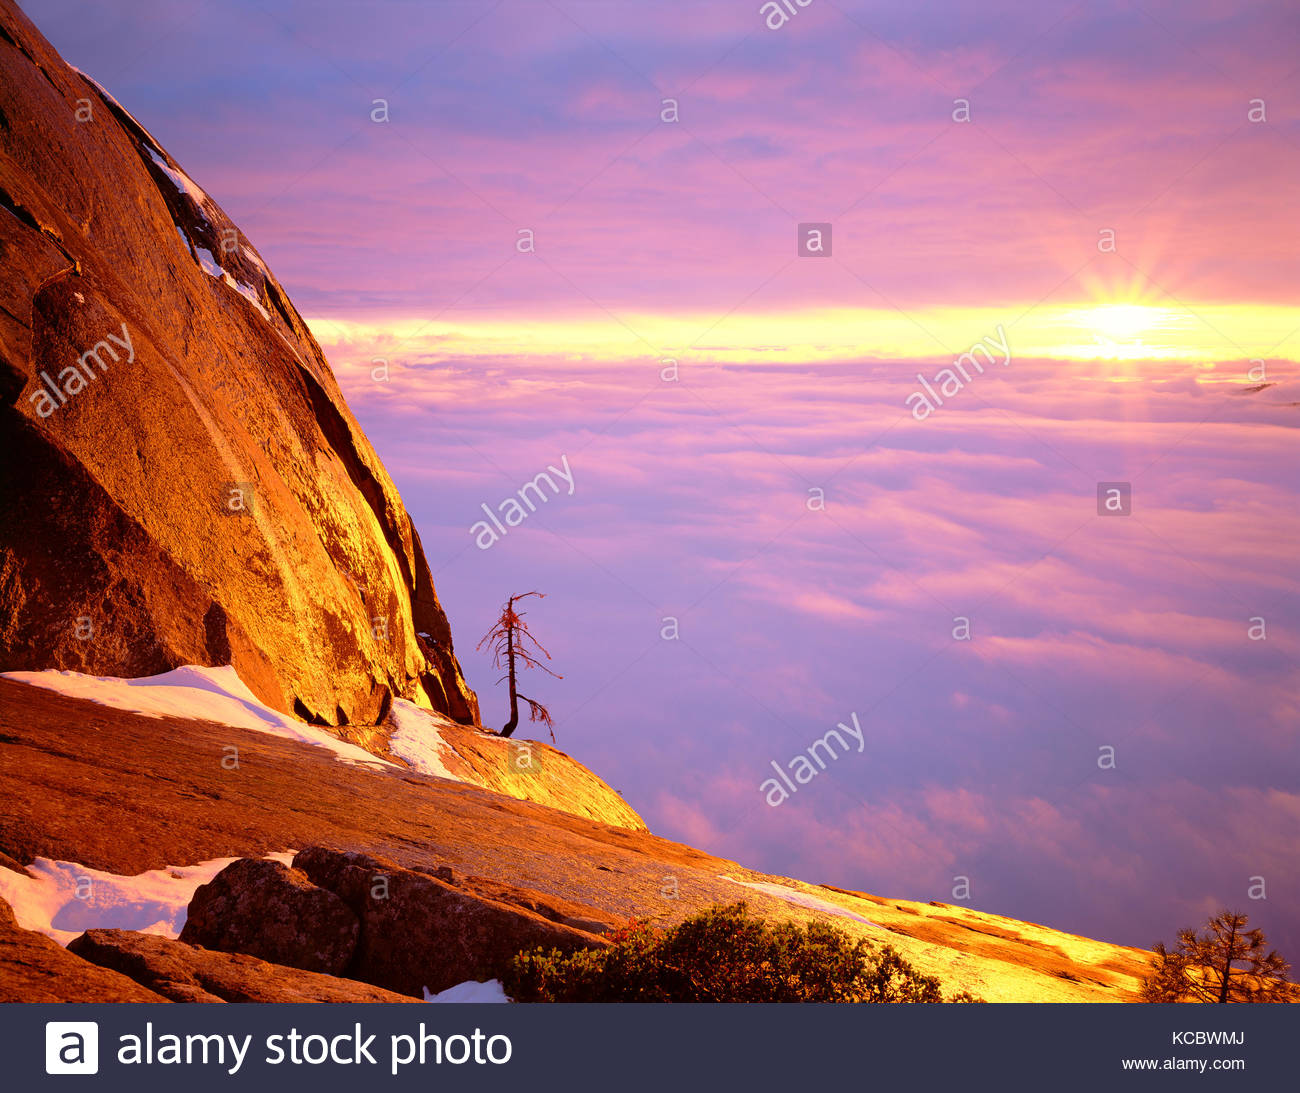 Clearing Storm at Sunset from Moro Rock, Sequoia National Park, California - Stock Image